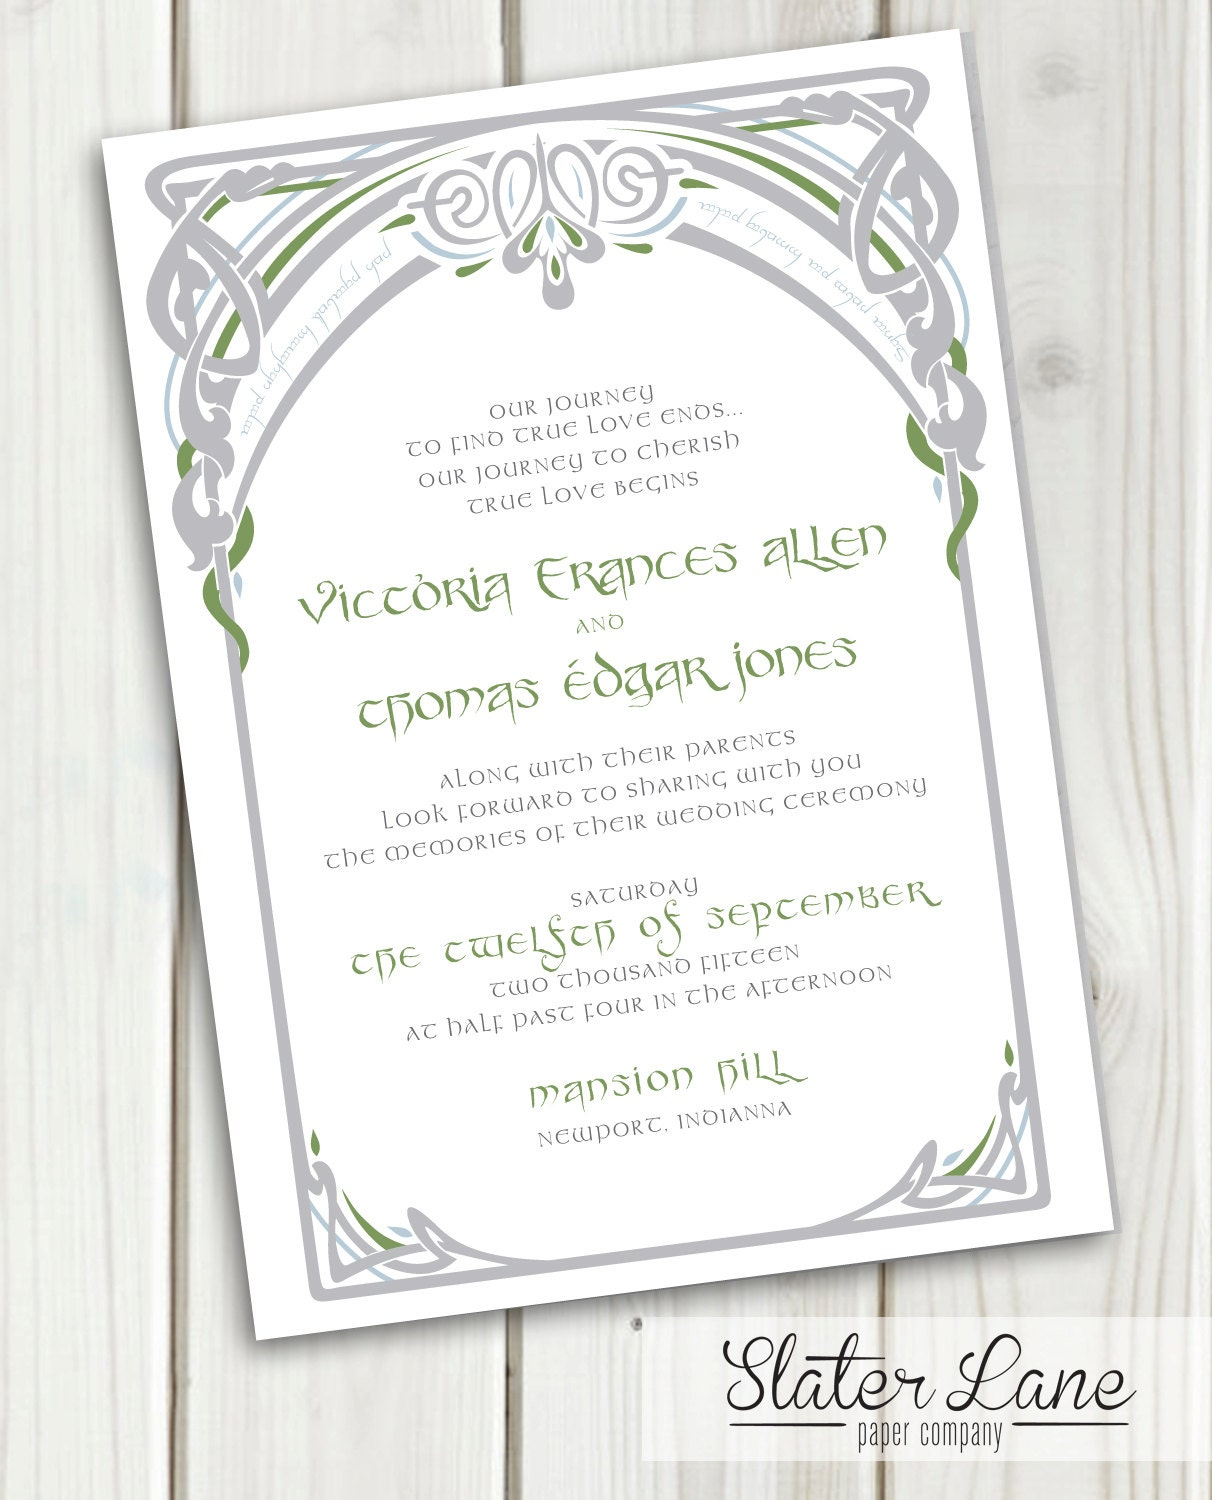 Lord Of The Rings Wedding Invitation DIY Printable LotR